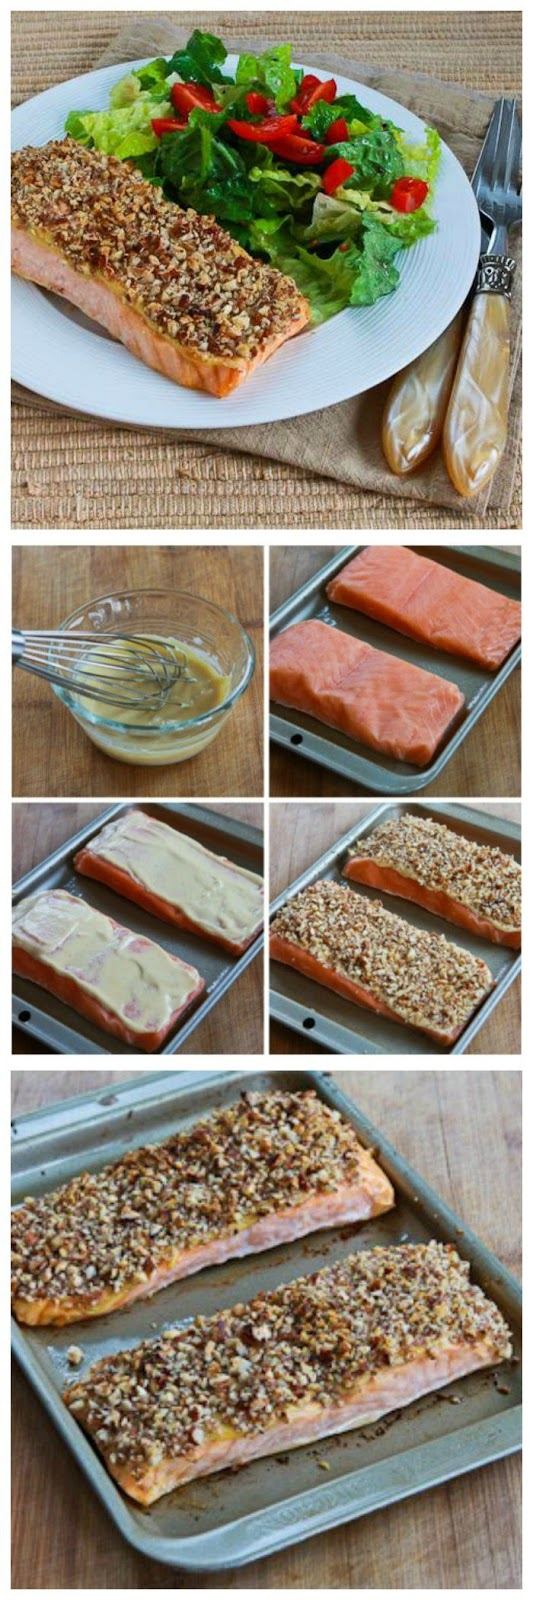 10 quick easy pecan crusted dijon salmon low carb gluten free